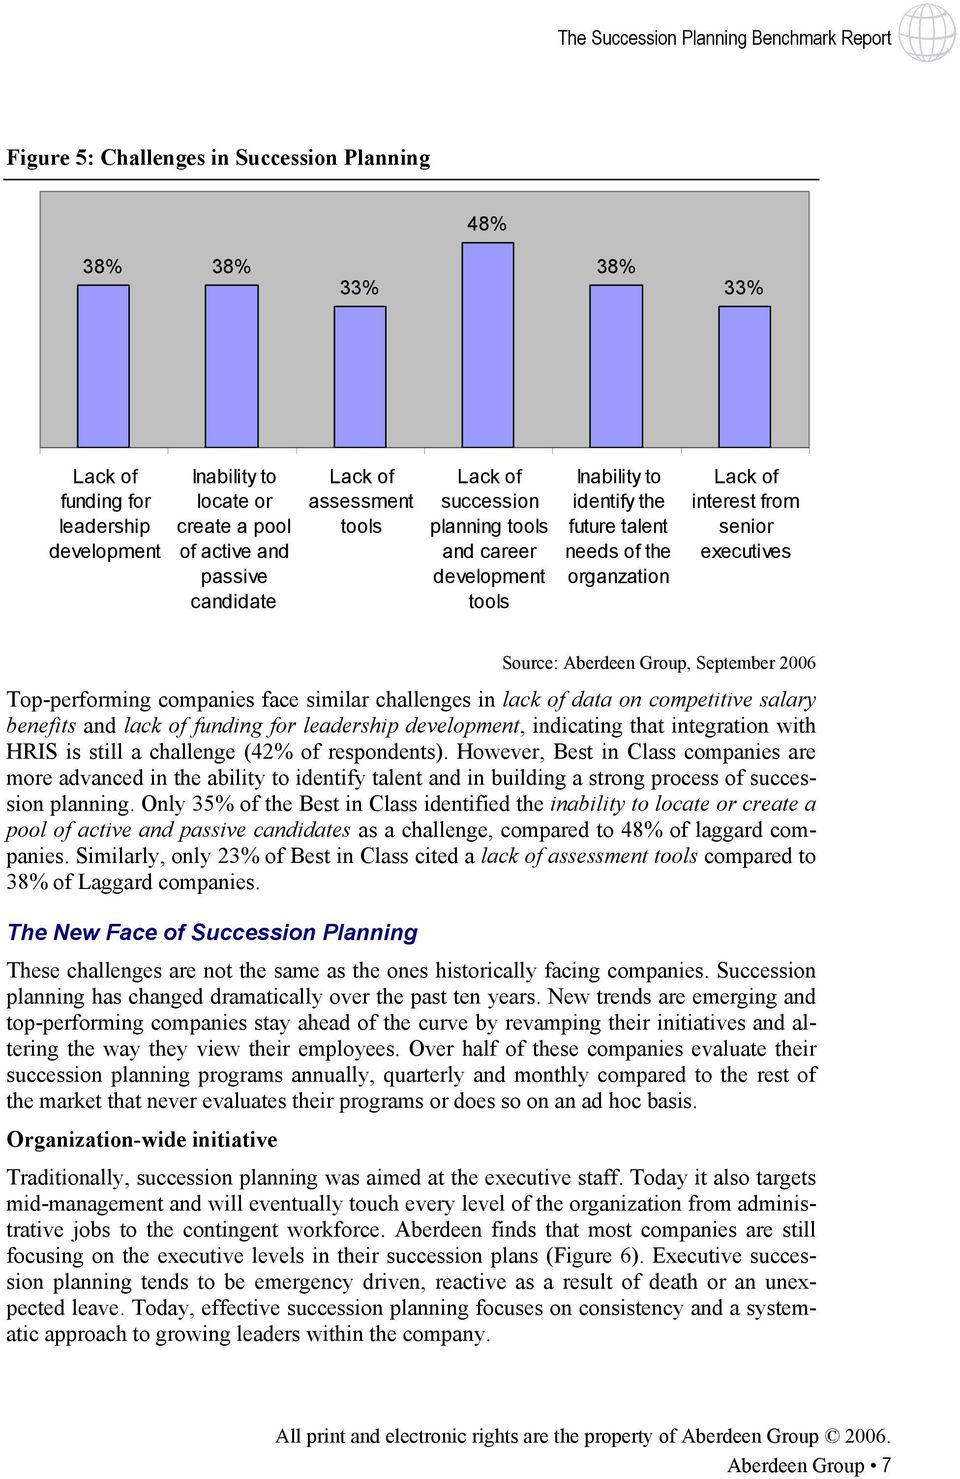 September 2006 Top-performing companies face similar challenges in lack of data on competitive salary benefits and lack of funding for leadership development, indicating that integration with HRIS is